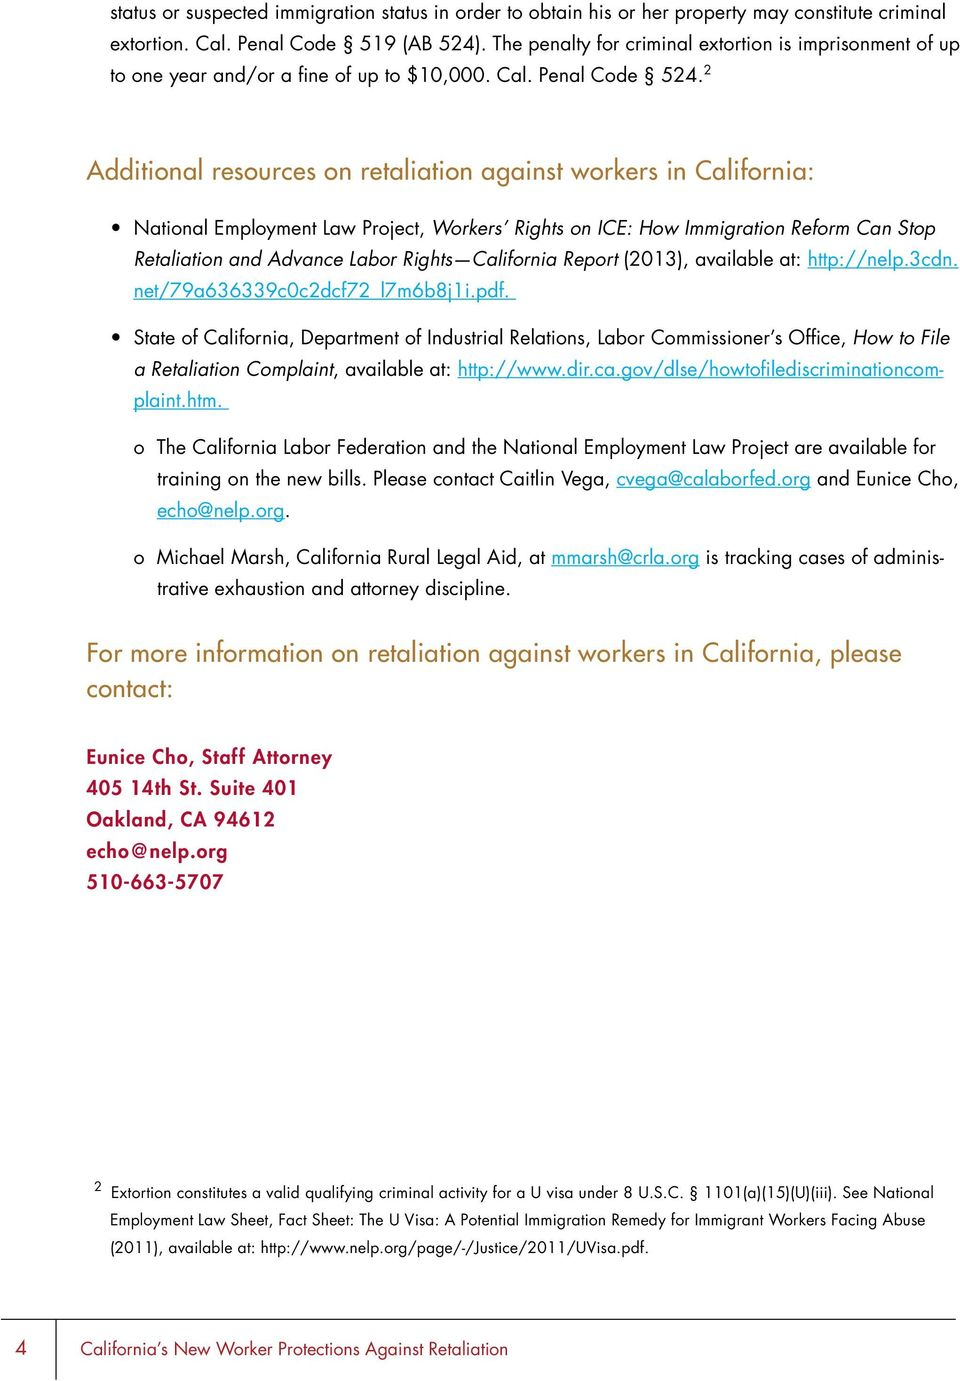 2 Additional resources on retaliation against workers in California: National Employment Law Project, Workers Rights on ICE: How Immigration Reform Can Stop Retaliation and Advance Labor Rights